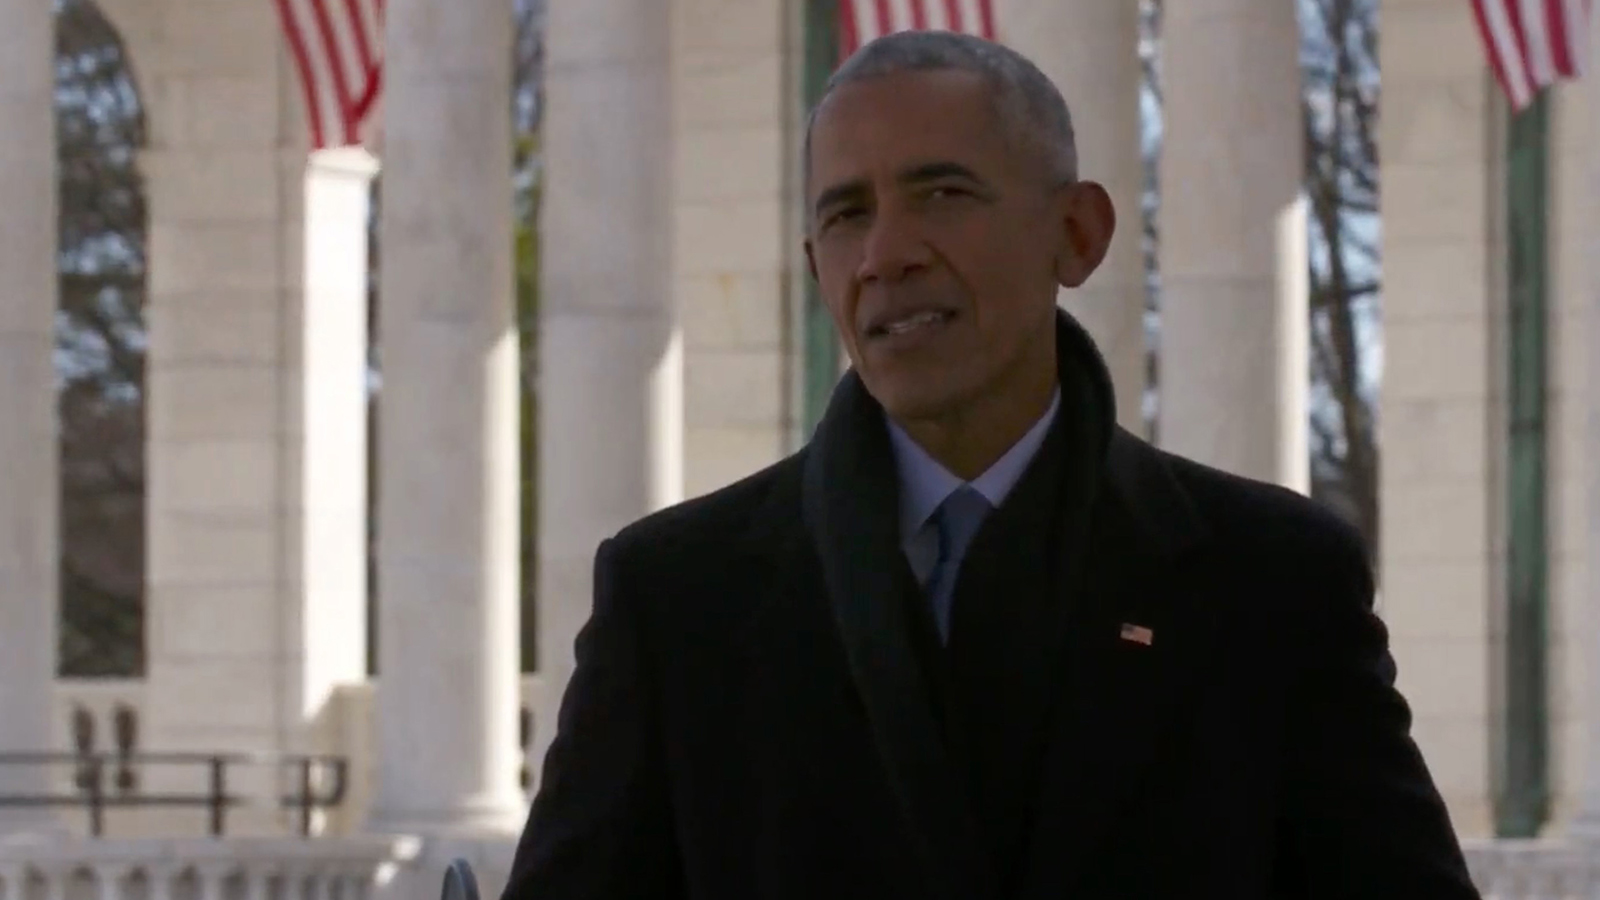 In this screengrab, Former president Barack Obama speaks during the Celebrating America Primetime Special on January 20.